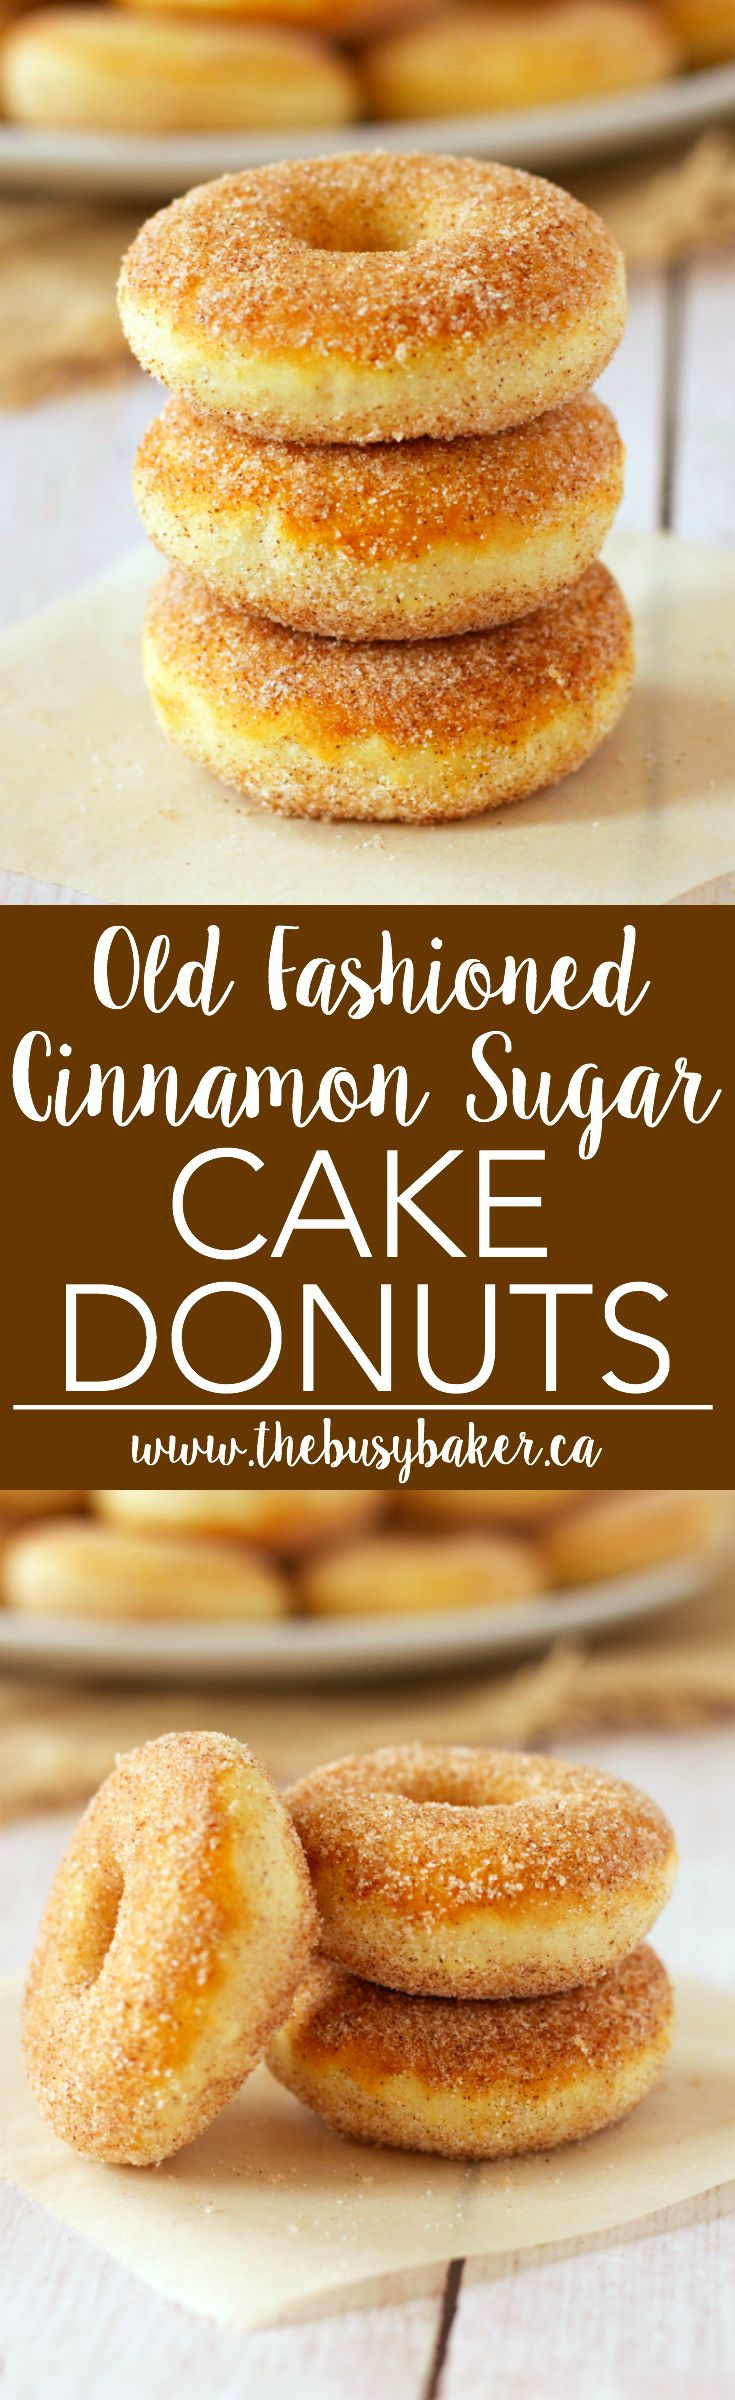 These Old Fashioned Cinnamon Sugar Baked Cake Donuts are easy to make, and they're lower in fat and sugar than most donuts, making